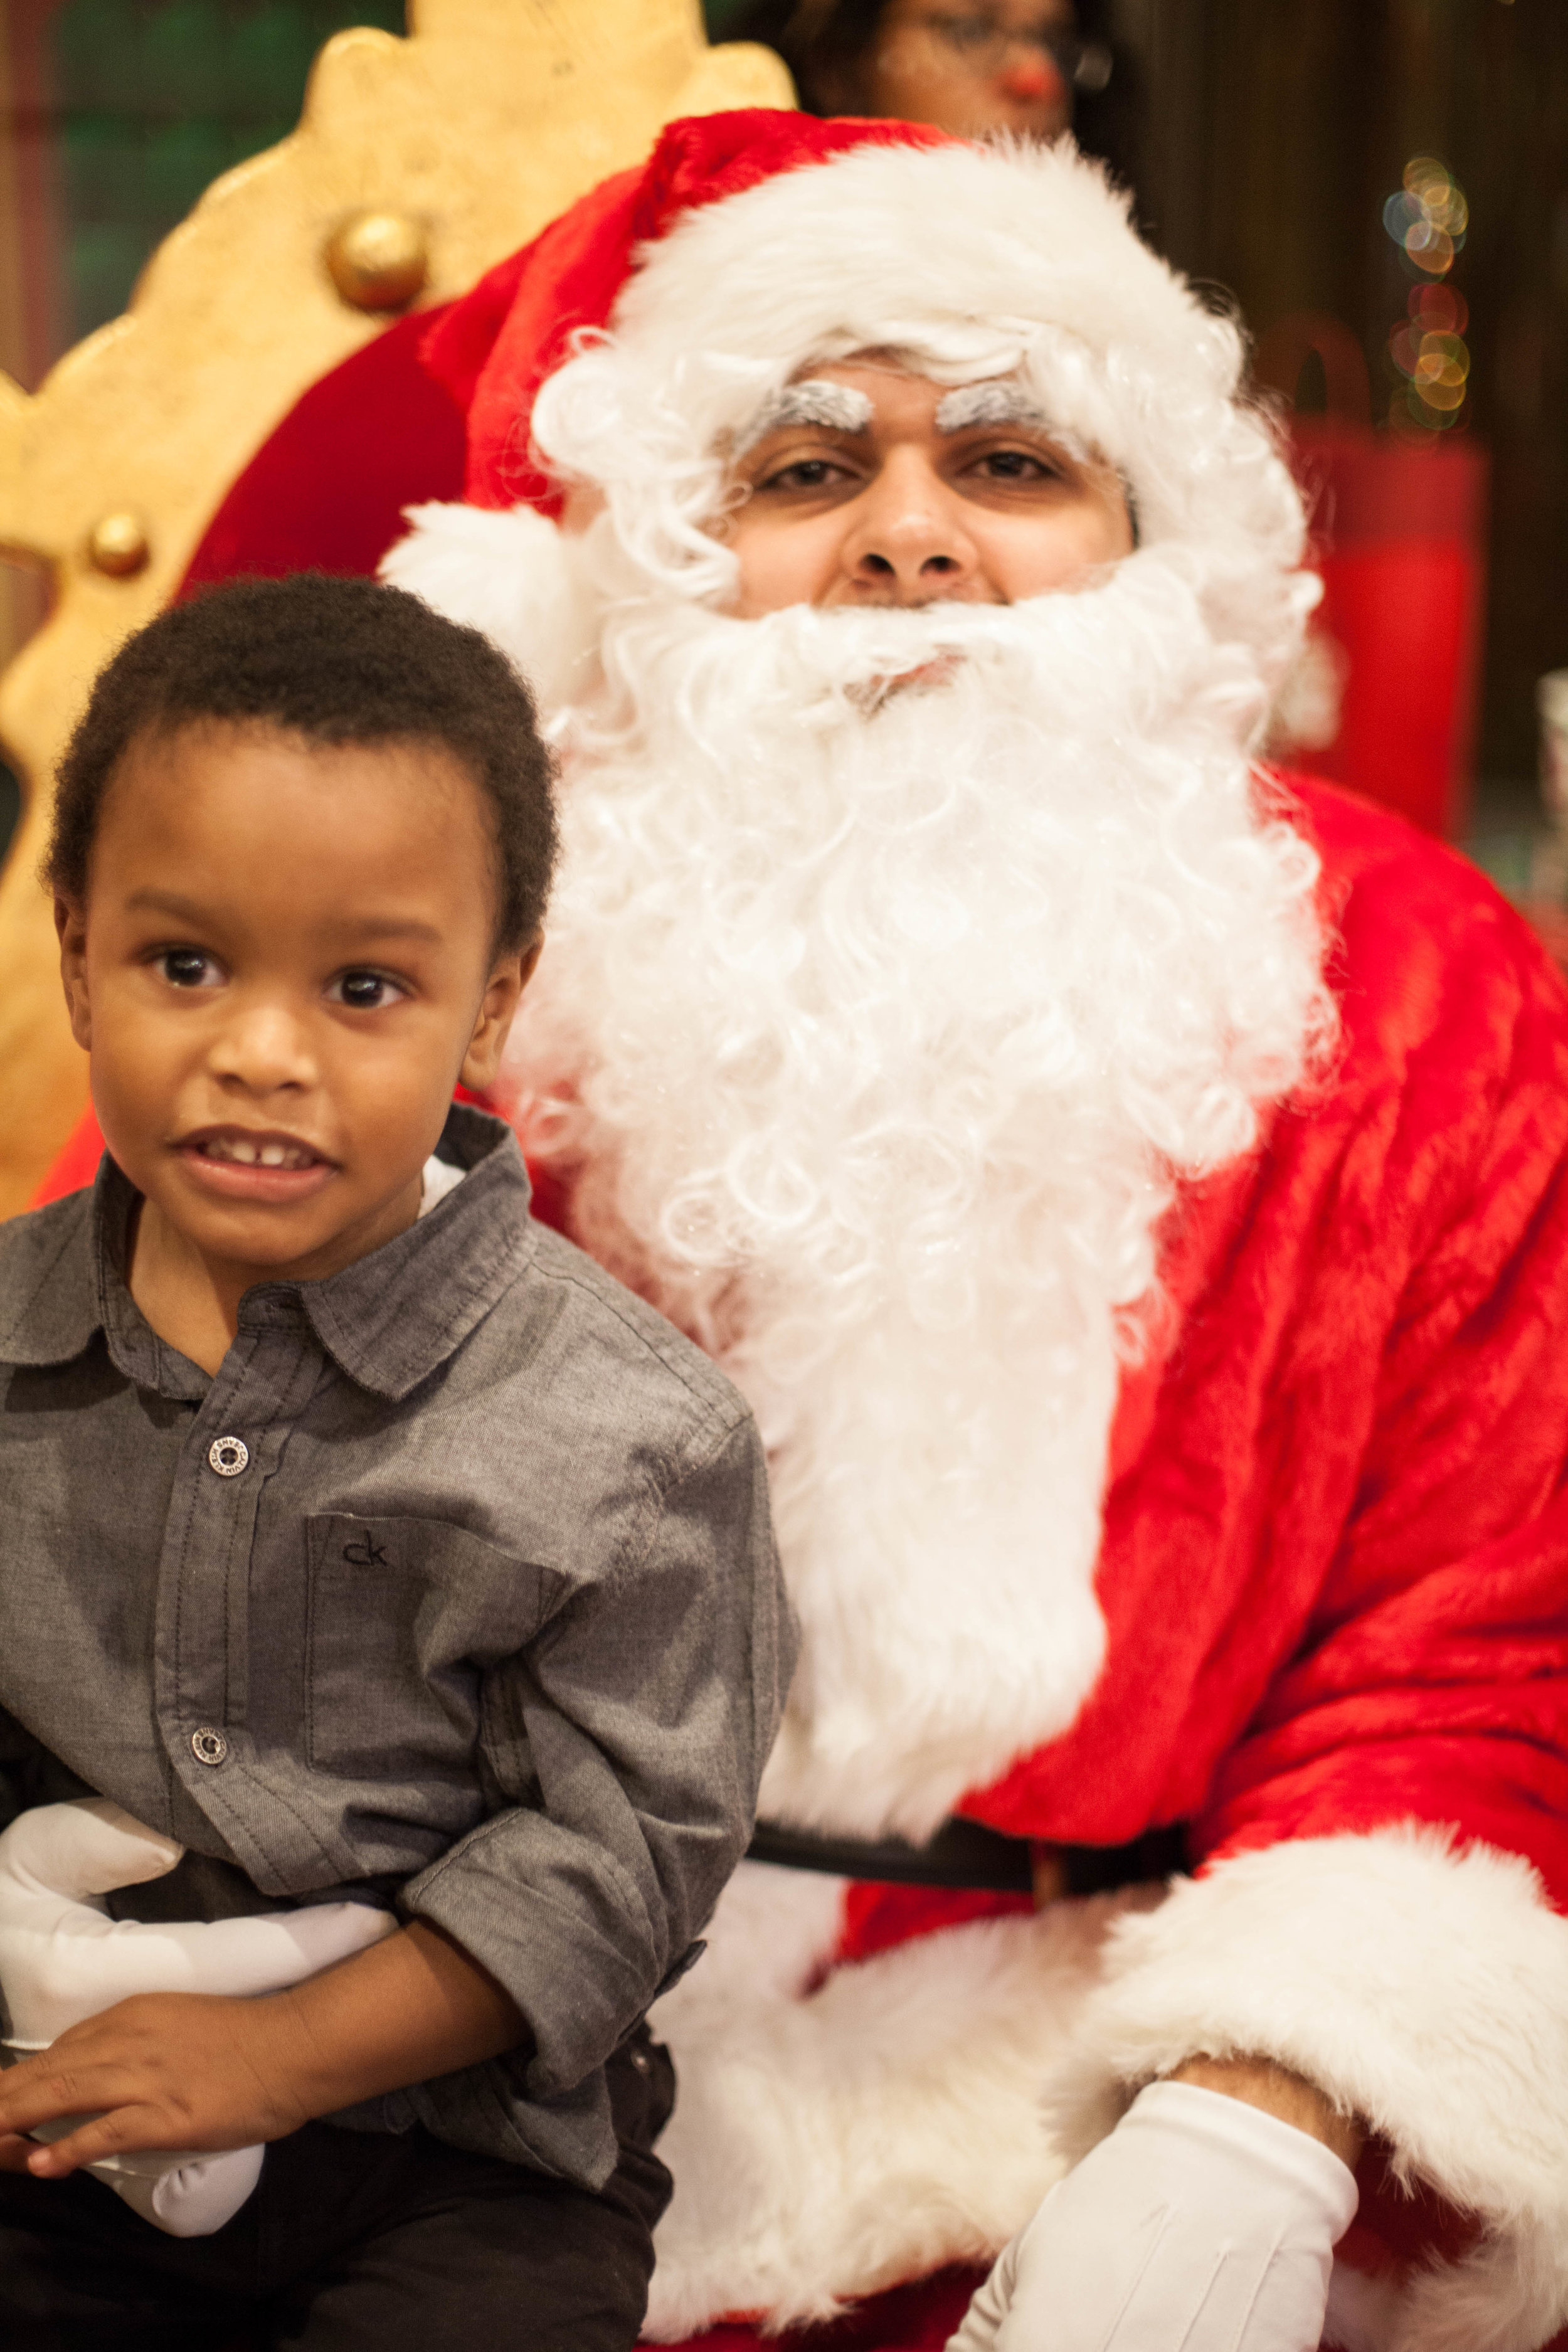 hope-holiday-party-2016_30763289124_o.jpg